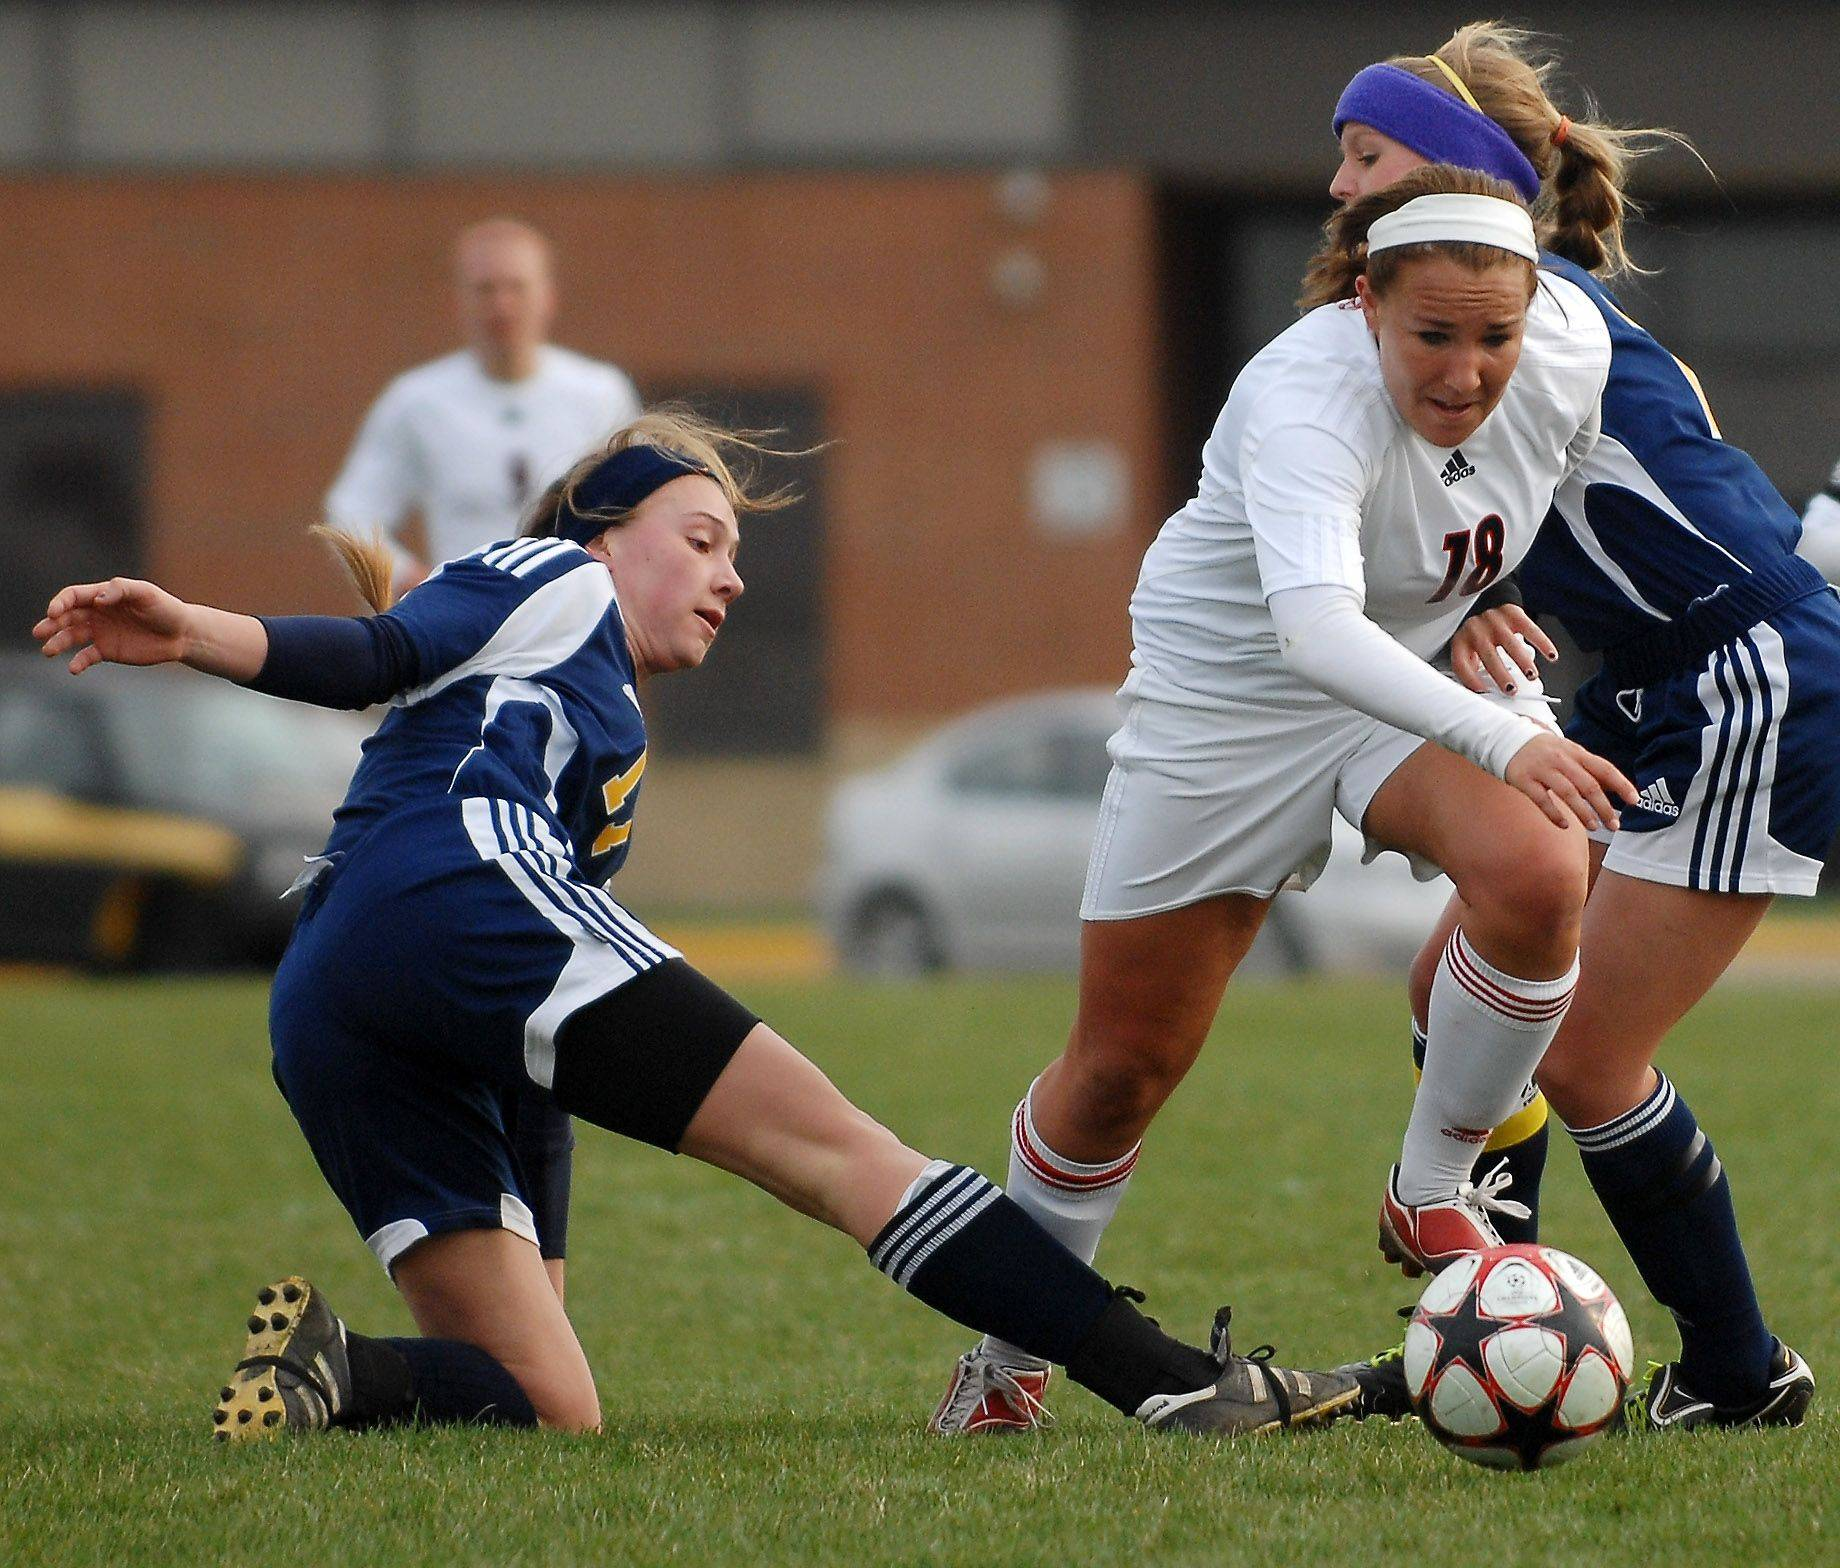 Huntley's Aimee Wronski battles through a pair of Glenbrook South defenders during Thursday's quarterfinal of the Pepsi Showdown in Huntley.